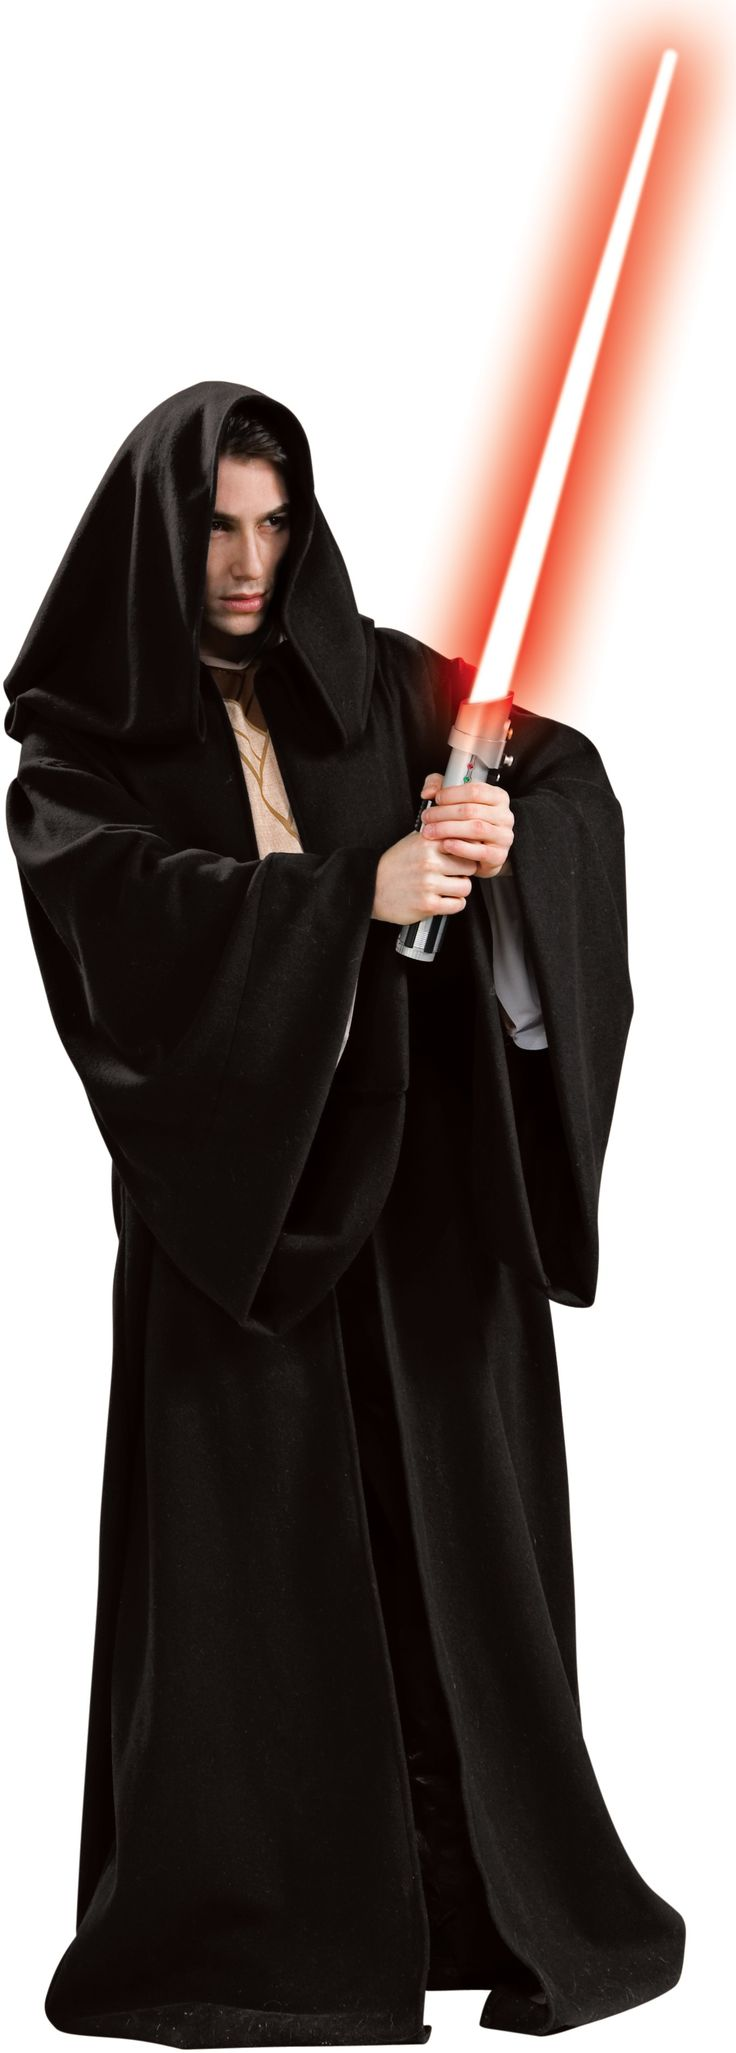 Star Wars Deluxe Sith Robe Adult Costume Standard The Star Wars Sith Robe looks amazing, with flowing arms and material. Includes one (1) Sith robe. Does not include tunic, pants, shoes or lightsaber. This is an officially licensed Star Wars ™ costume.